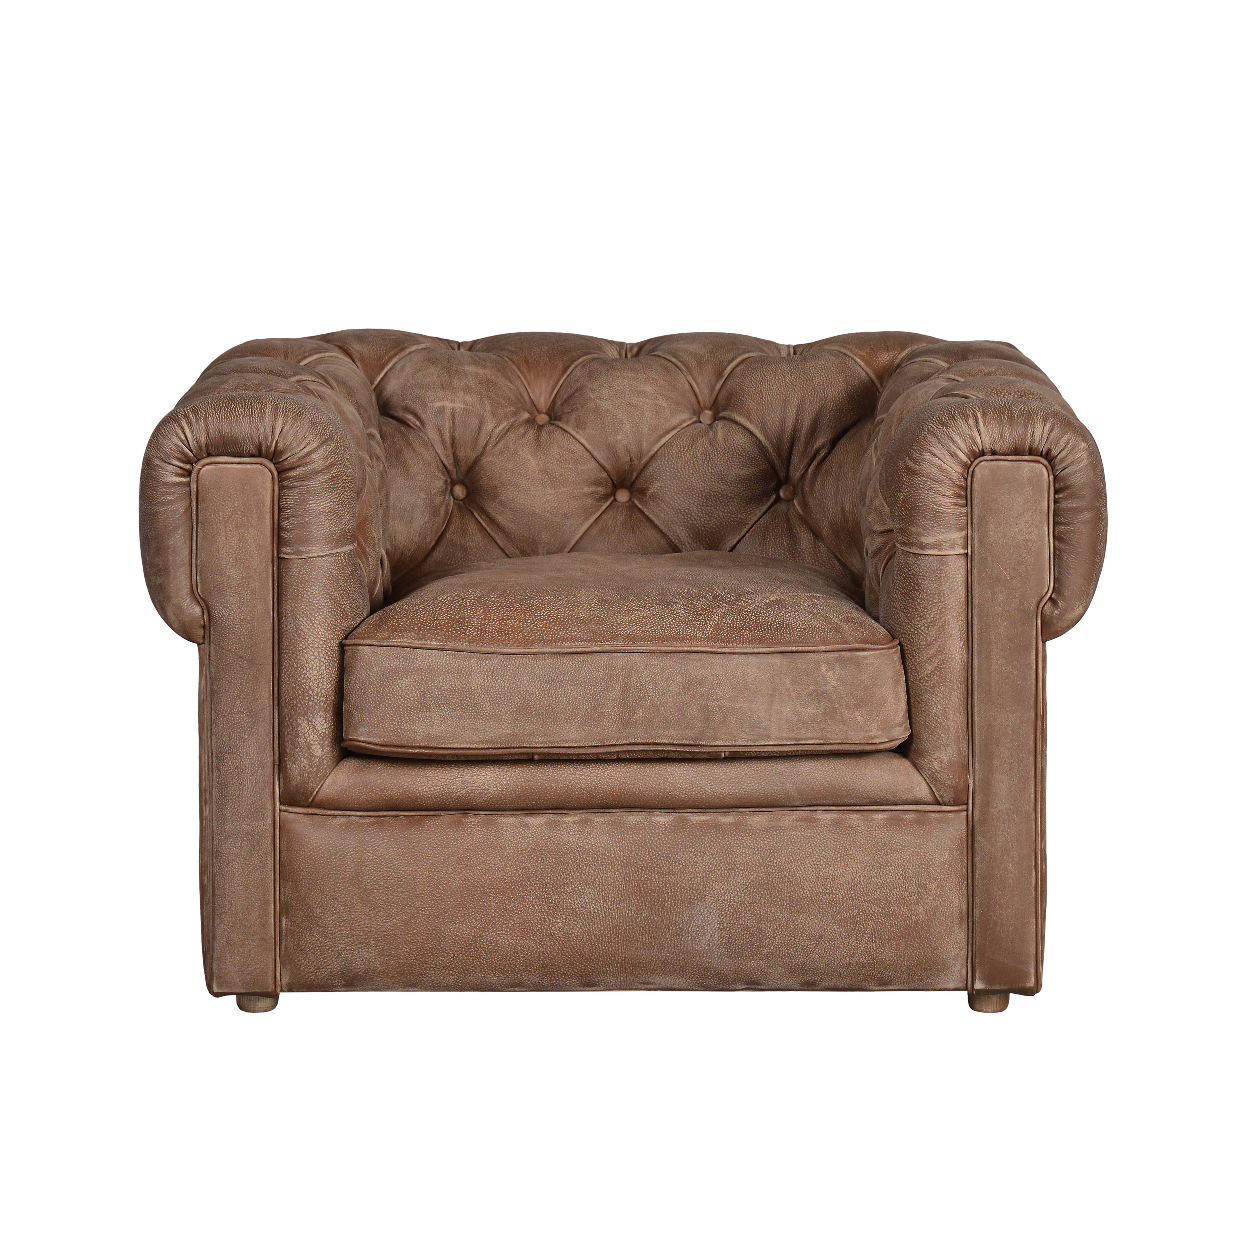 sofa 1 seater harveys leather sofas reviews timothy oulton piccadilly